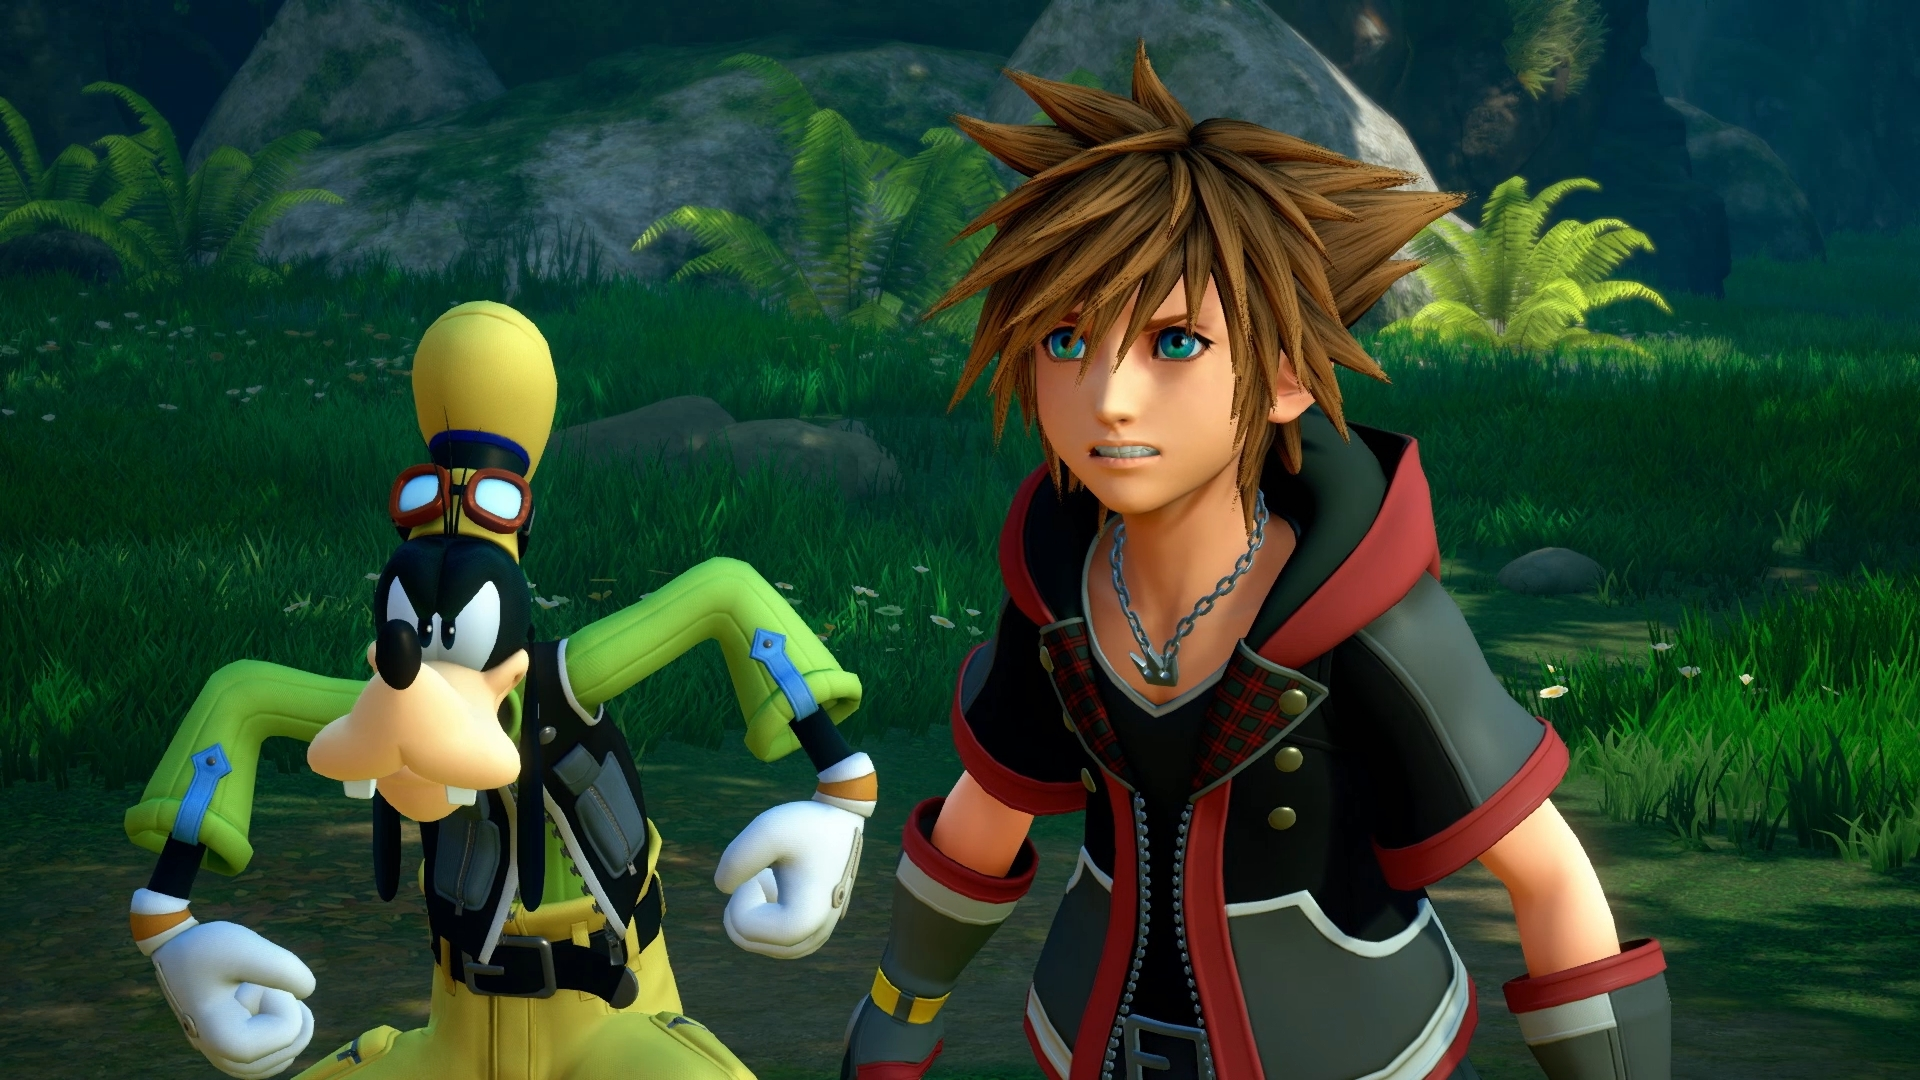 Kingdom Hearts Iii Remind Dlc Announced To Include New Bosses And